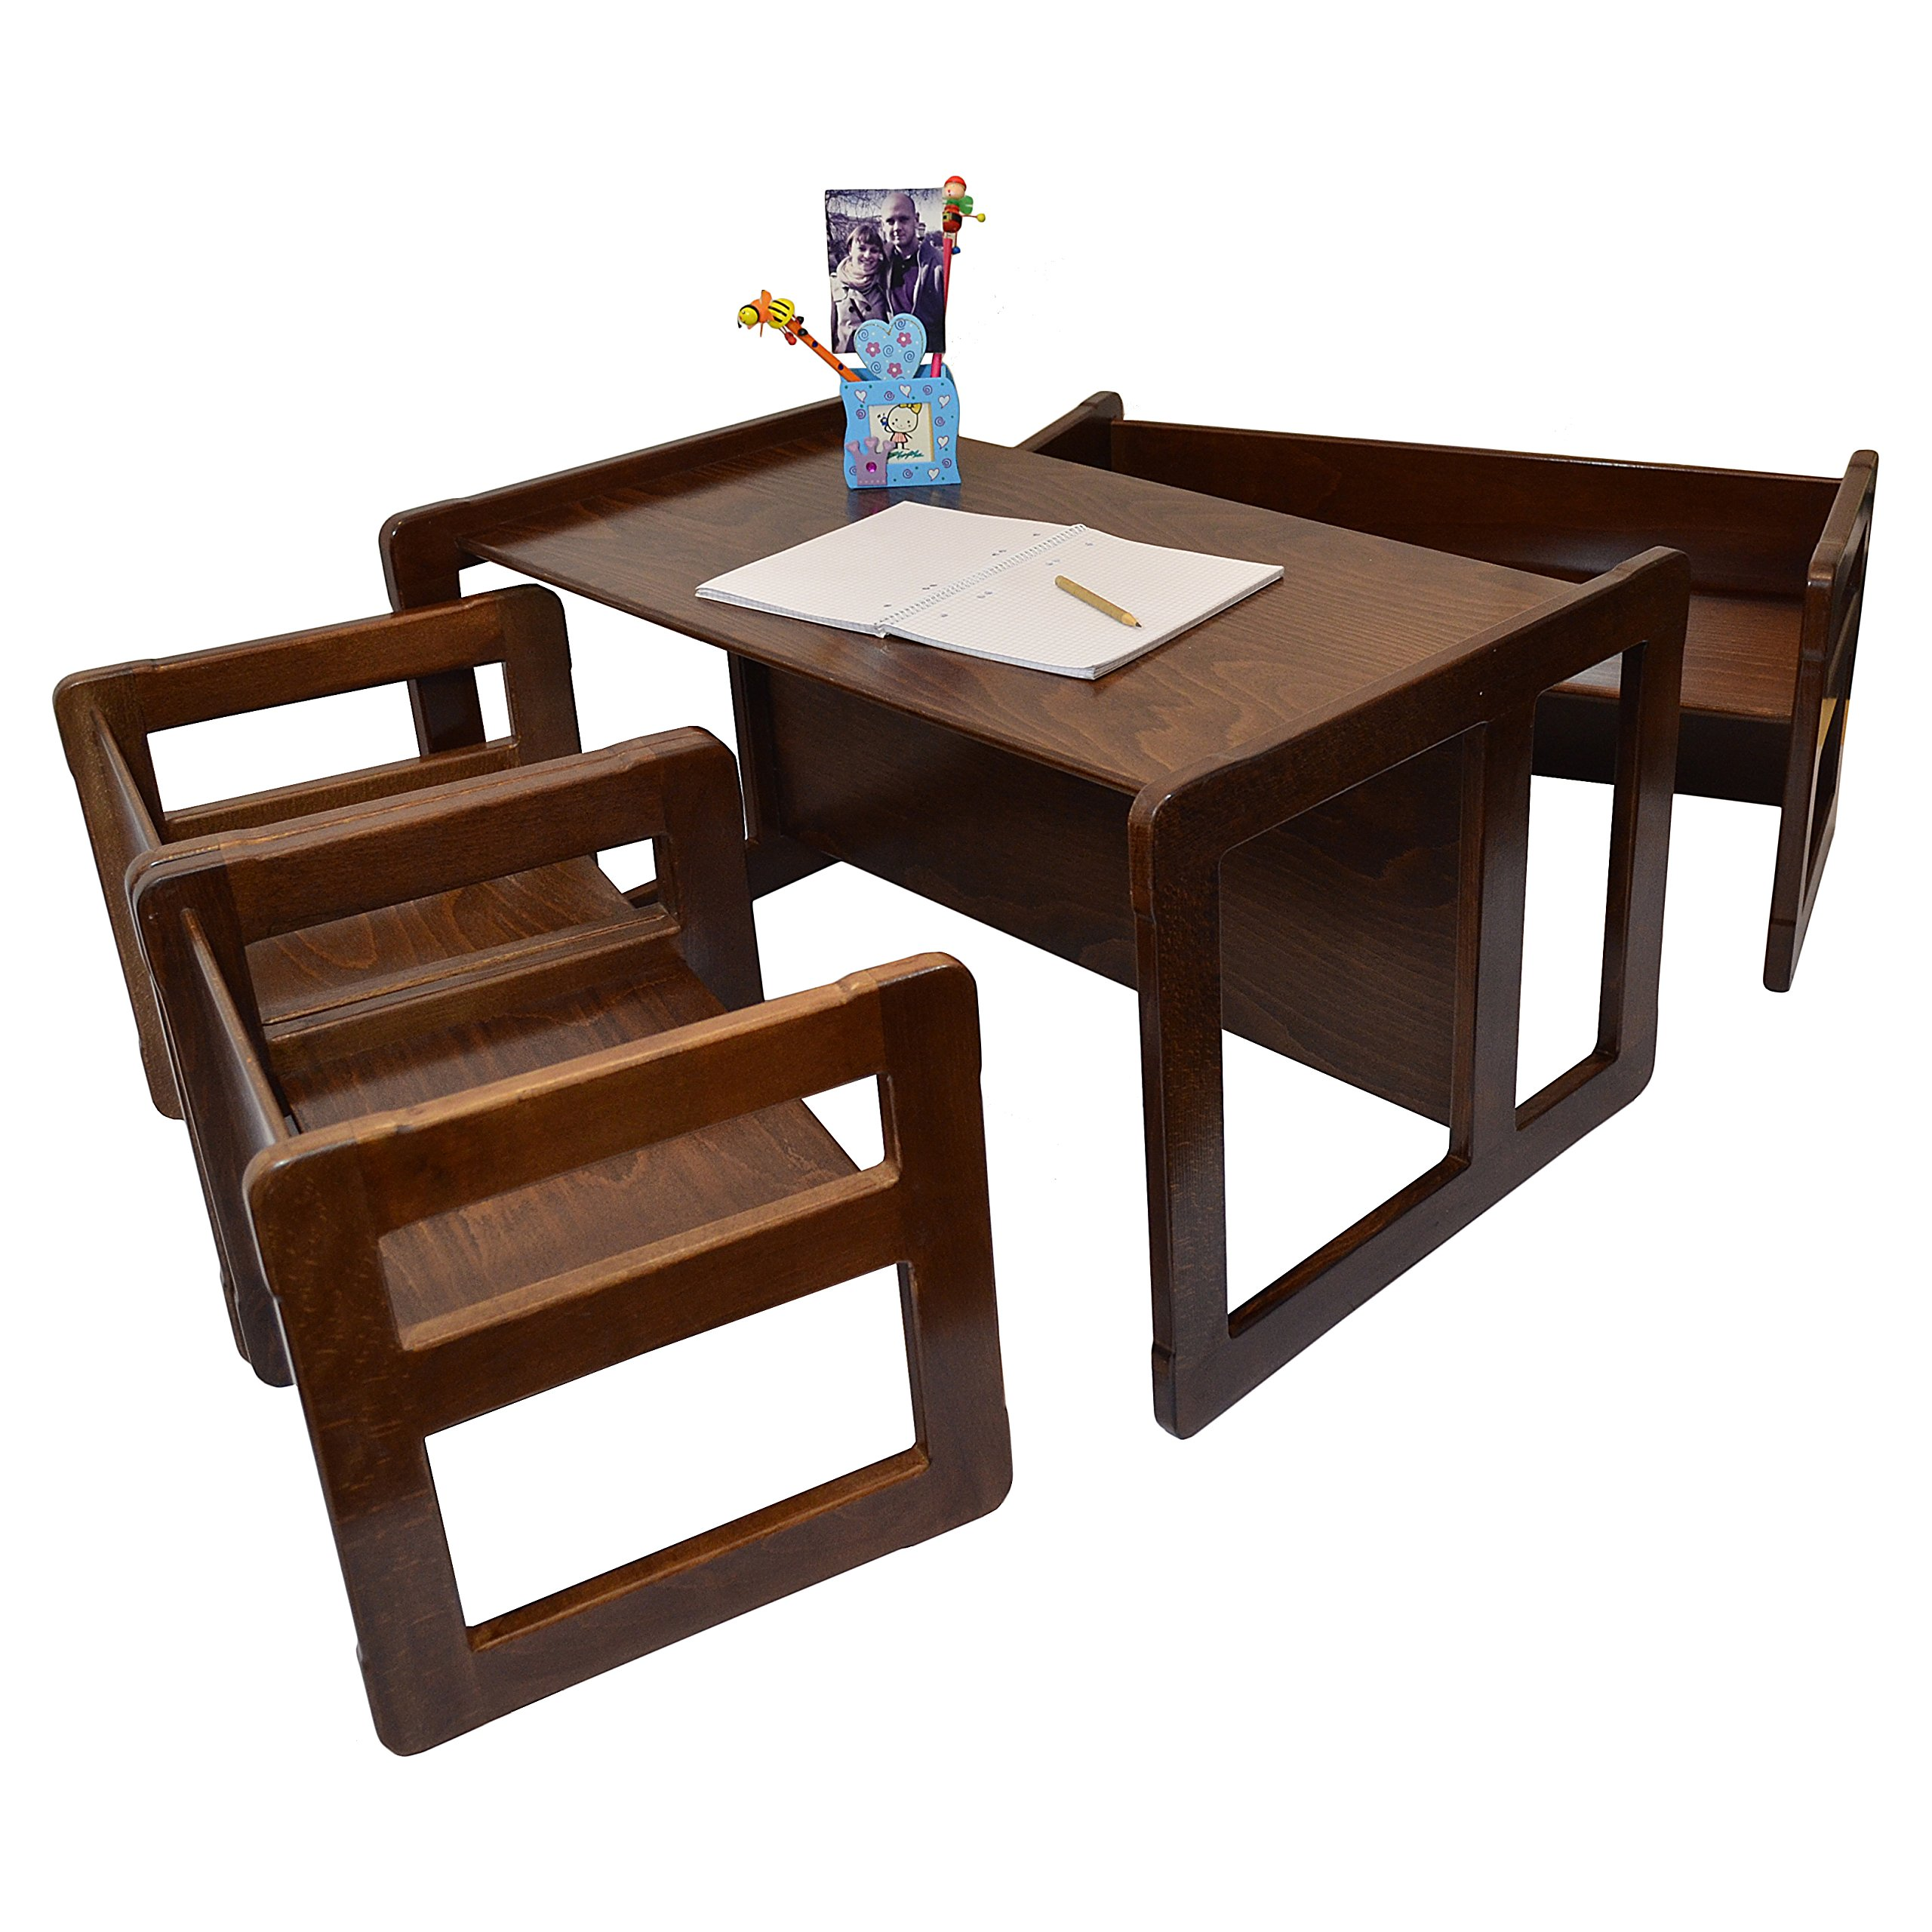 3 in 1 Childrens Multifunctional Furniture Set of 4, Two Small Chairs or Tables and One Small Bench or Table and One Large Bench or Table Beech Wood, Dark Stained by Obique Ltd (Image #1)